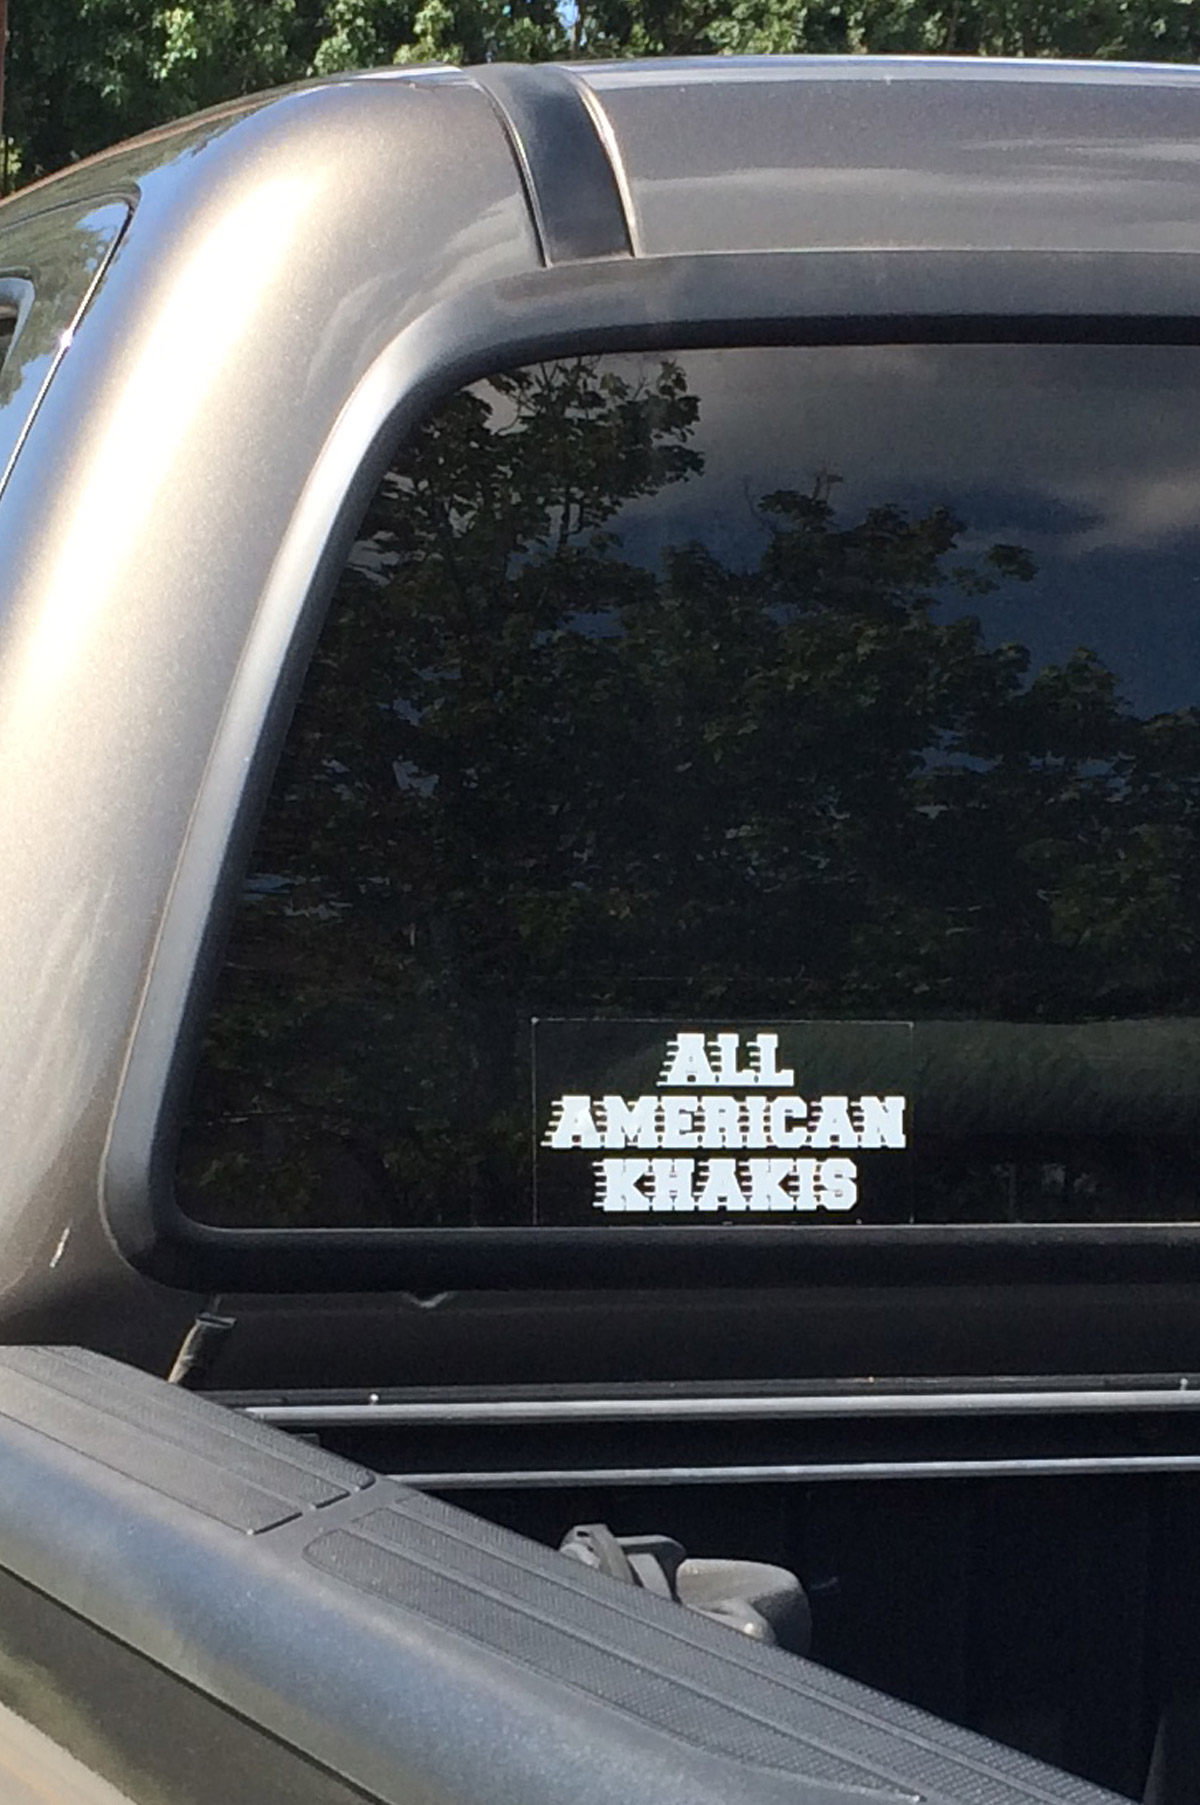 All American Khakis Window Decal